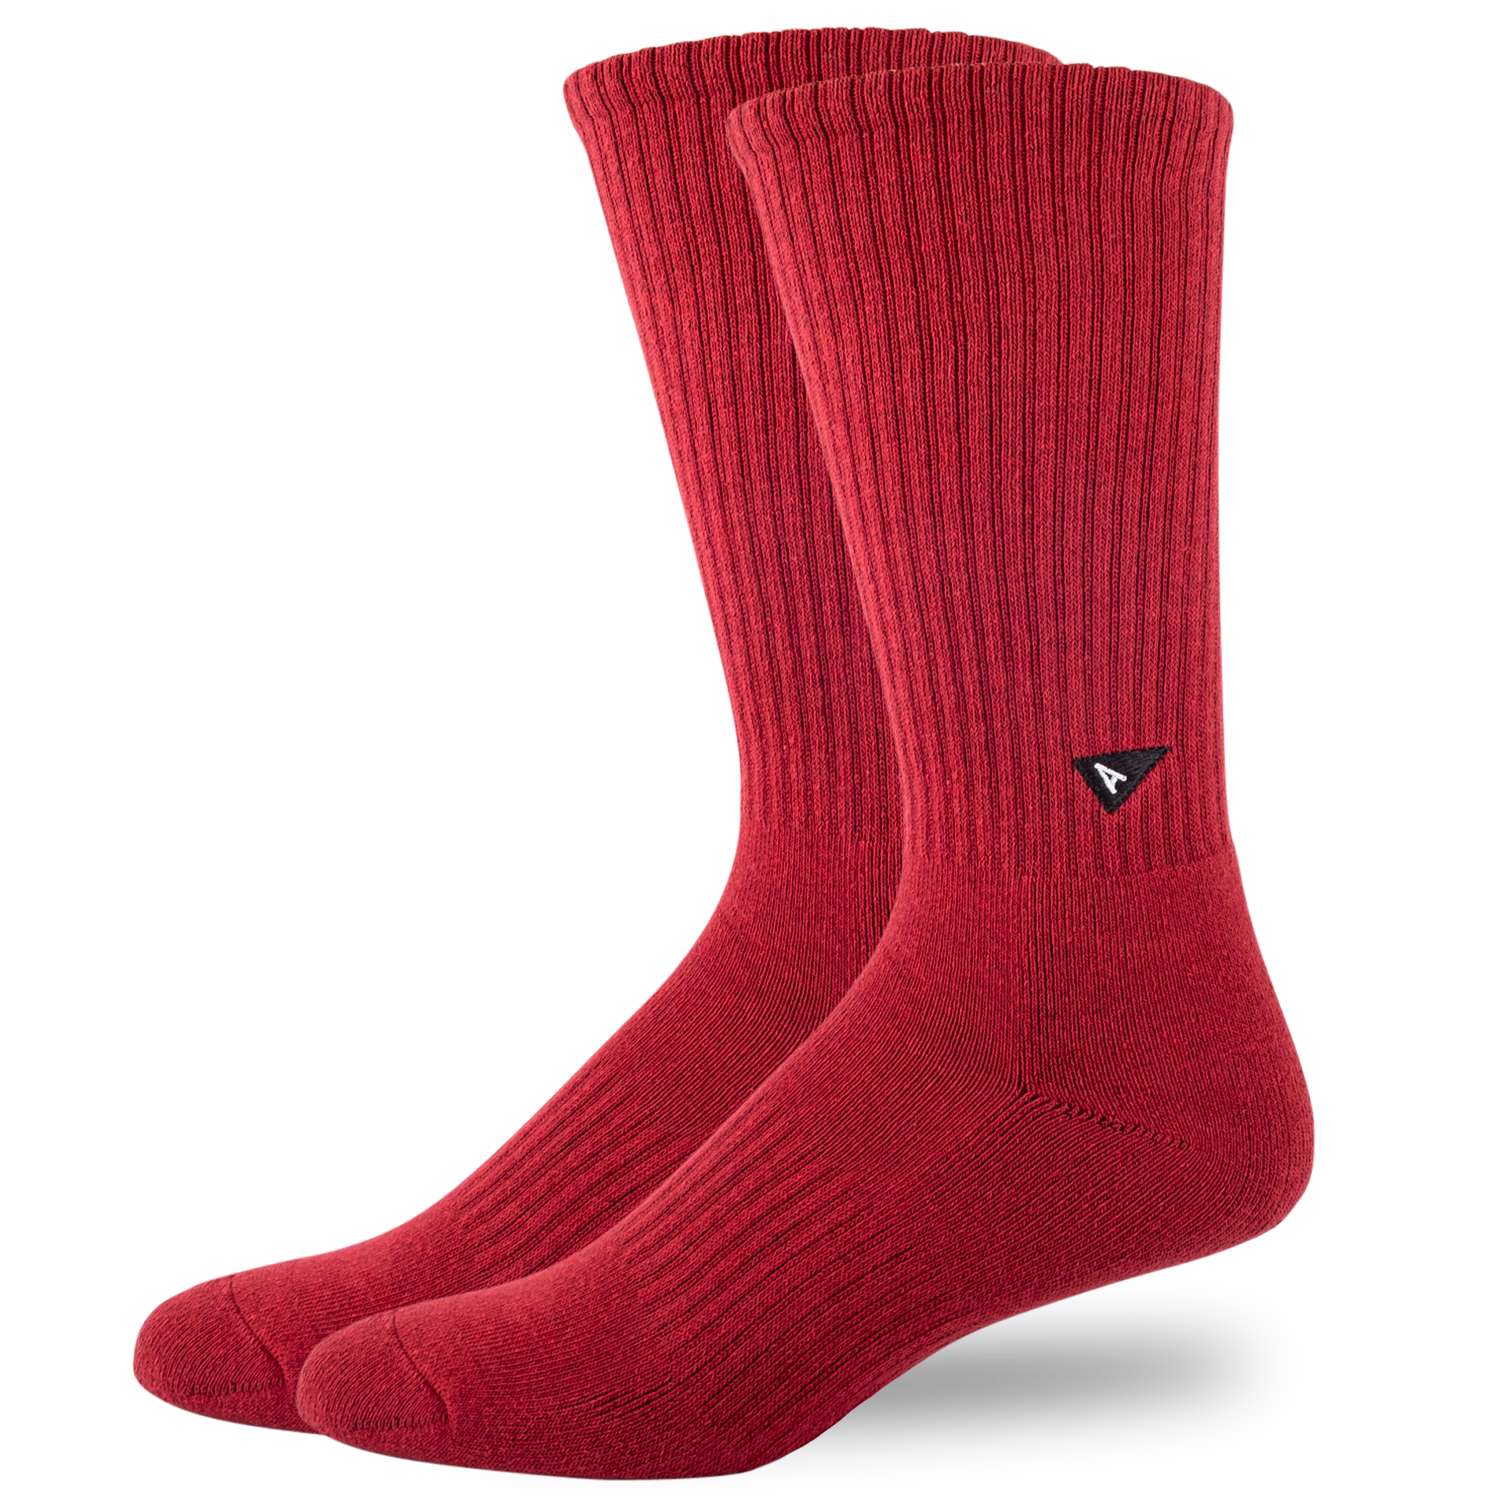 Arvin Goods Crew Sock Long - Burgundy